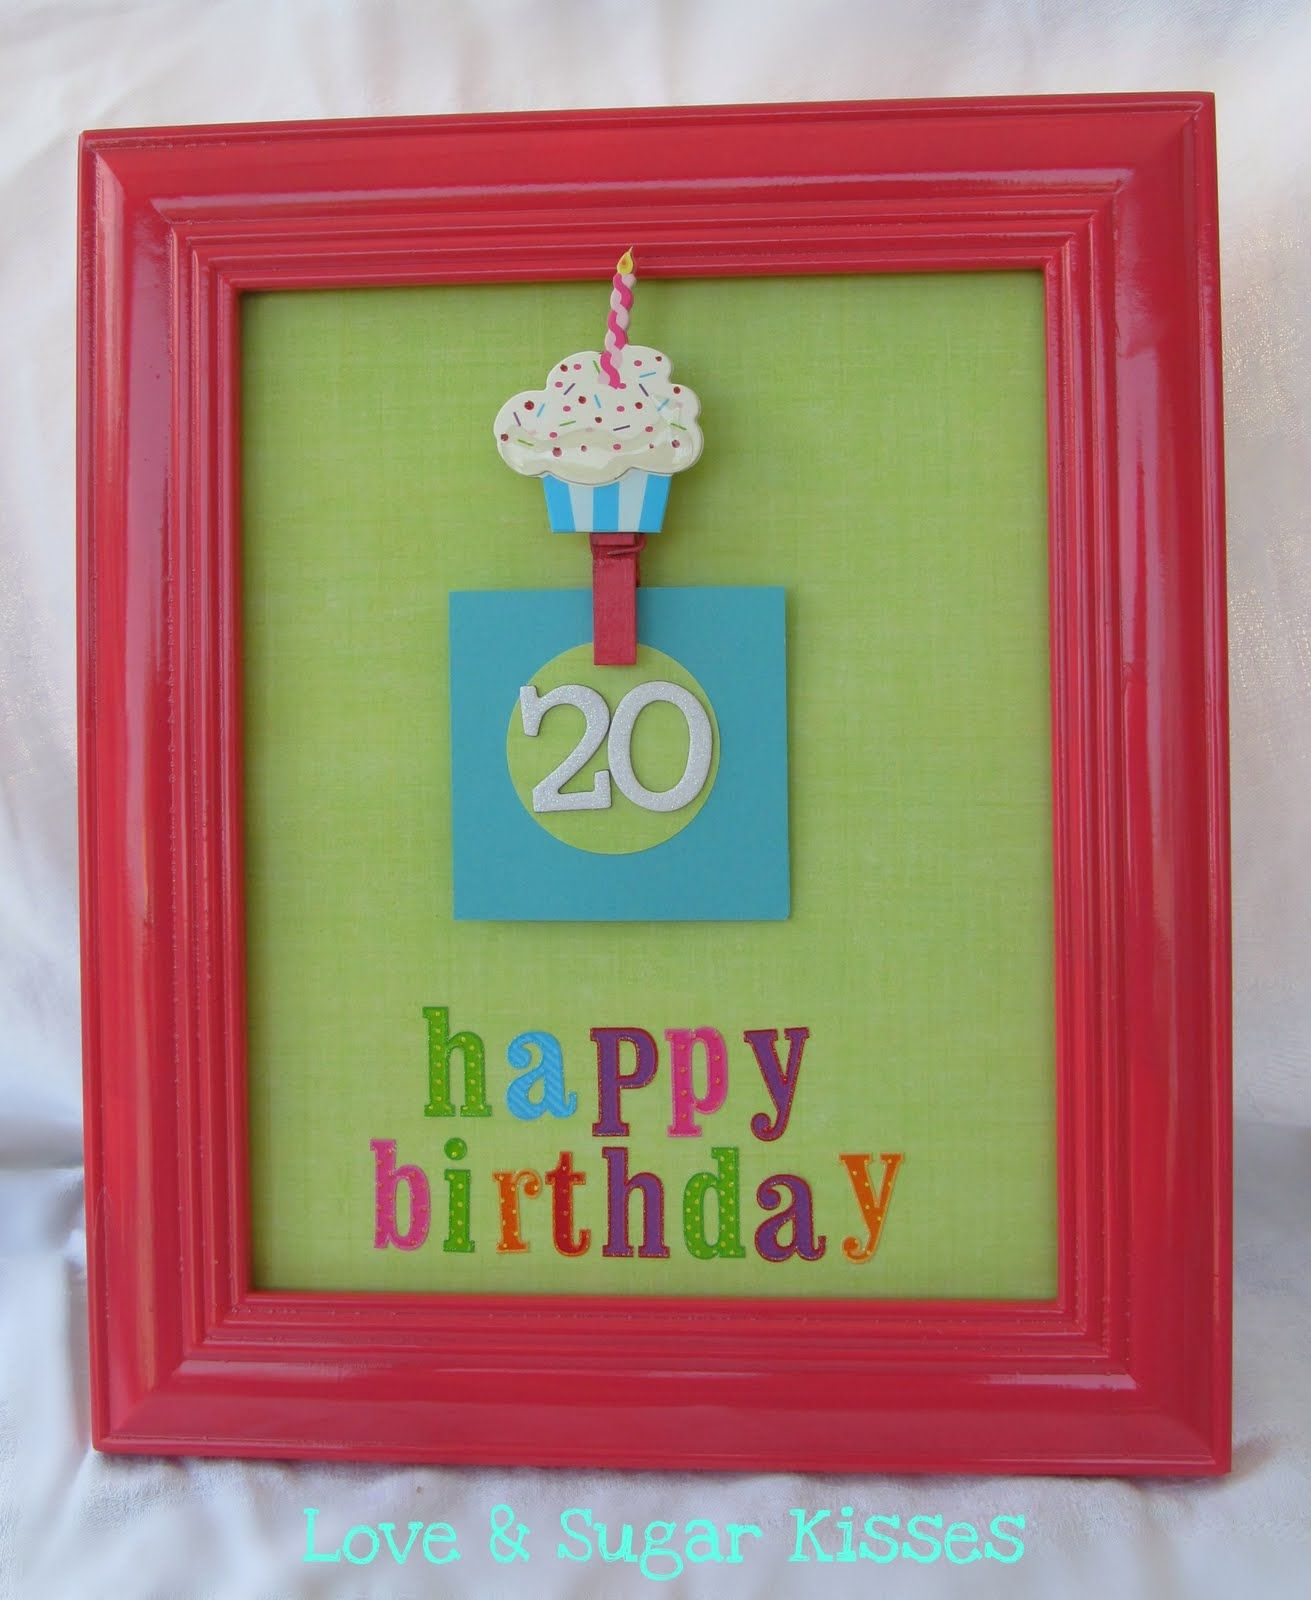 Love & Sugar Kisses: {DIY} Birthday Countdown Frame